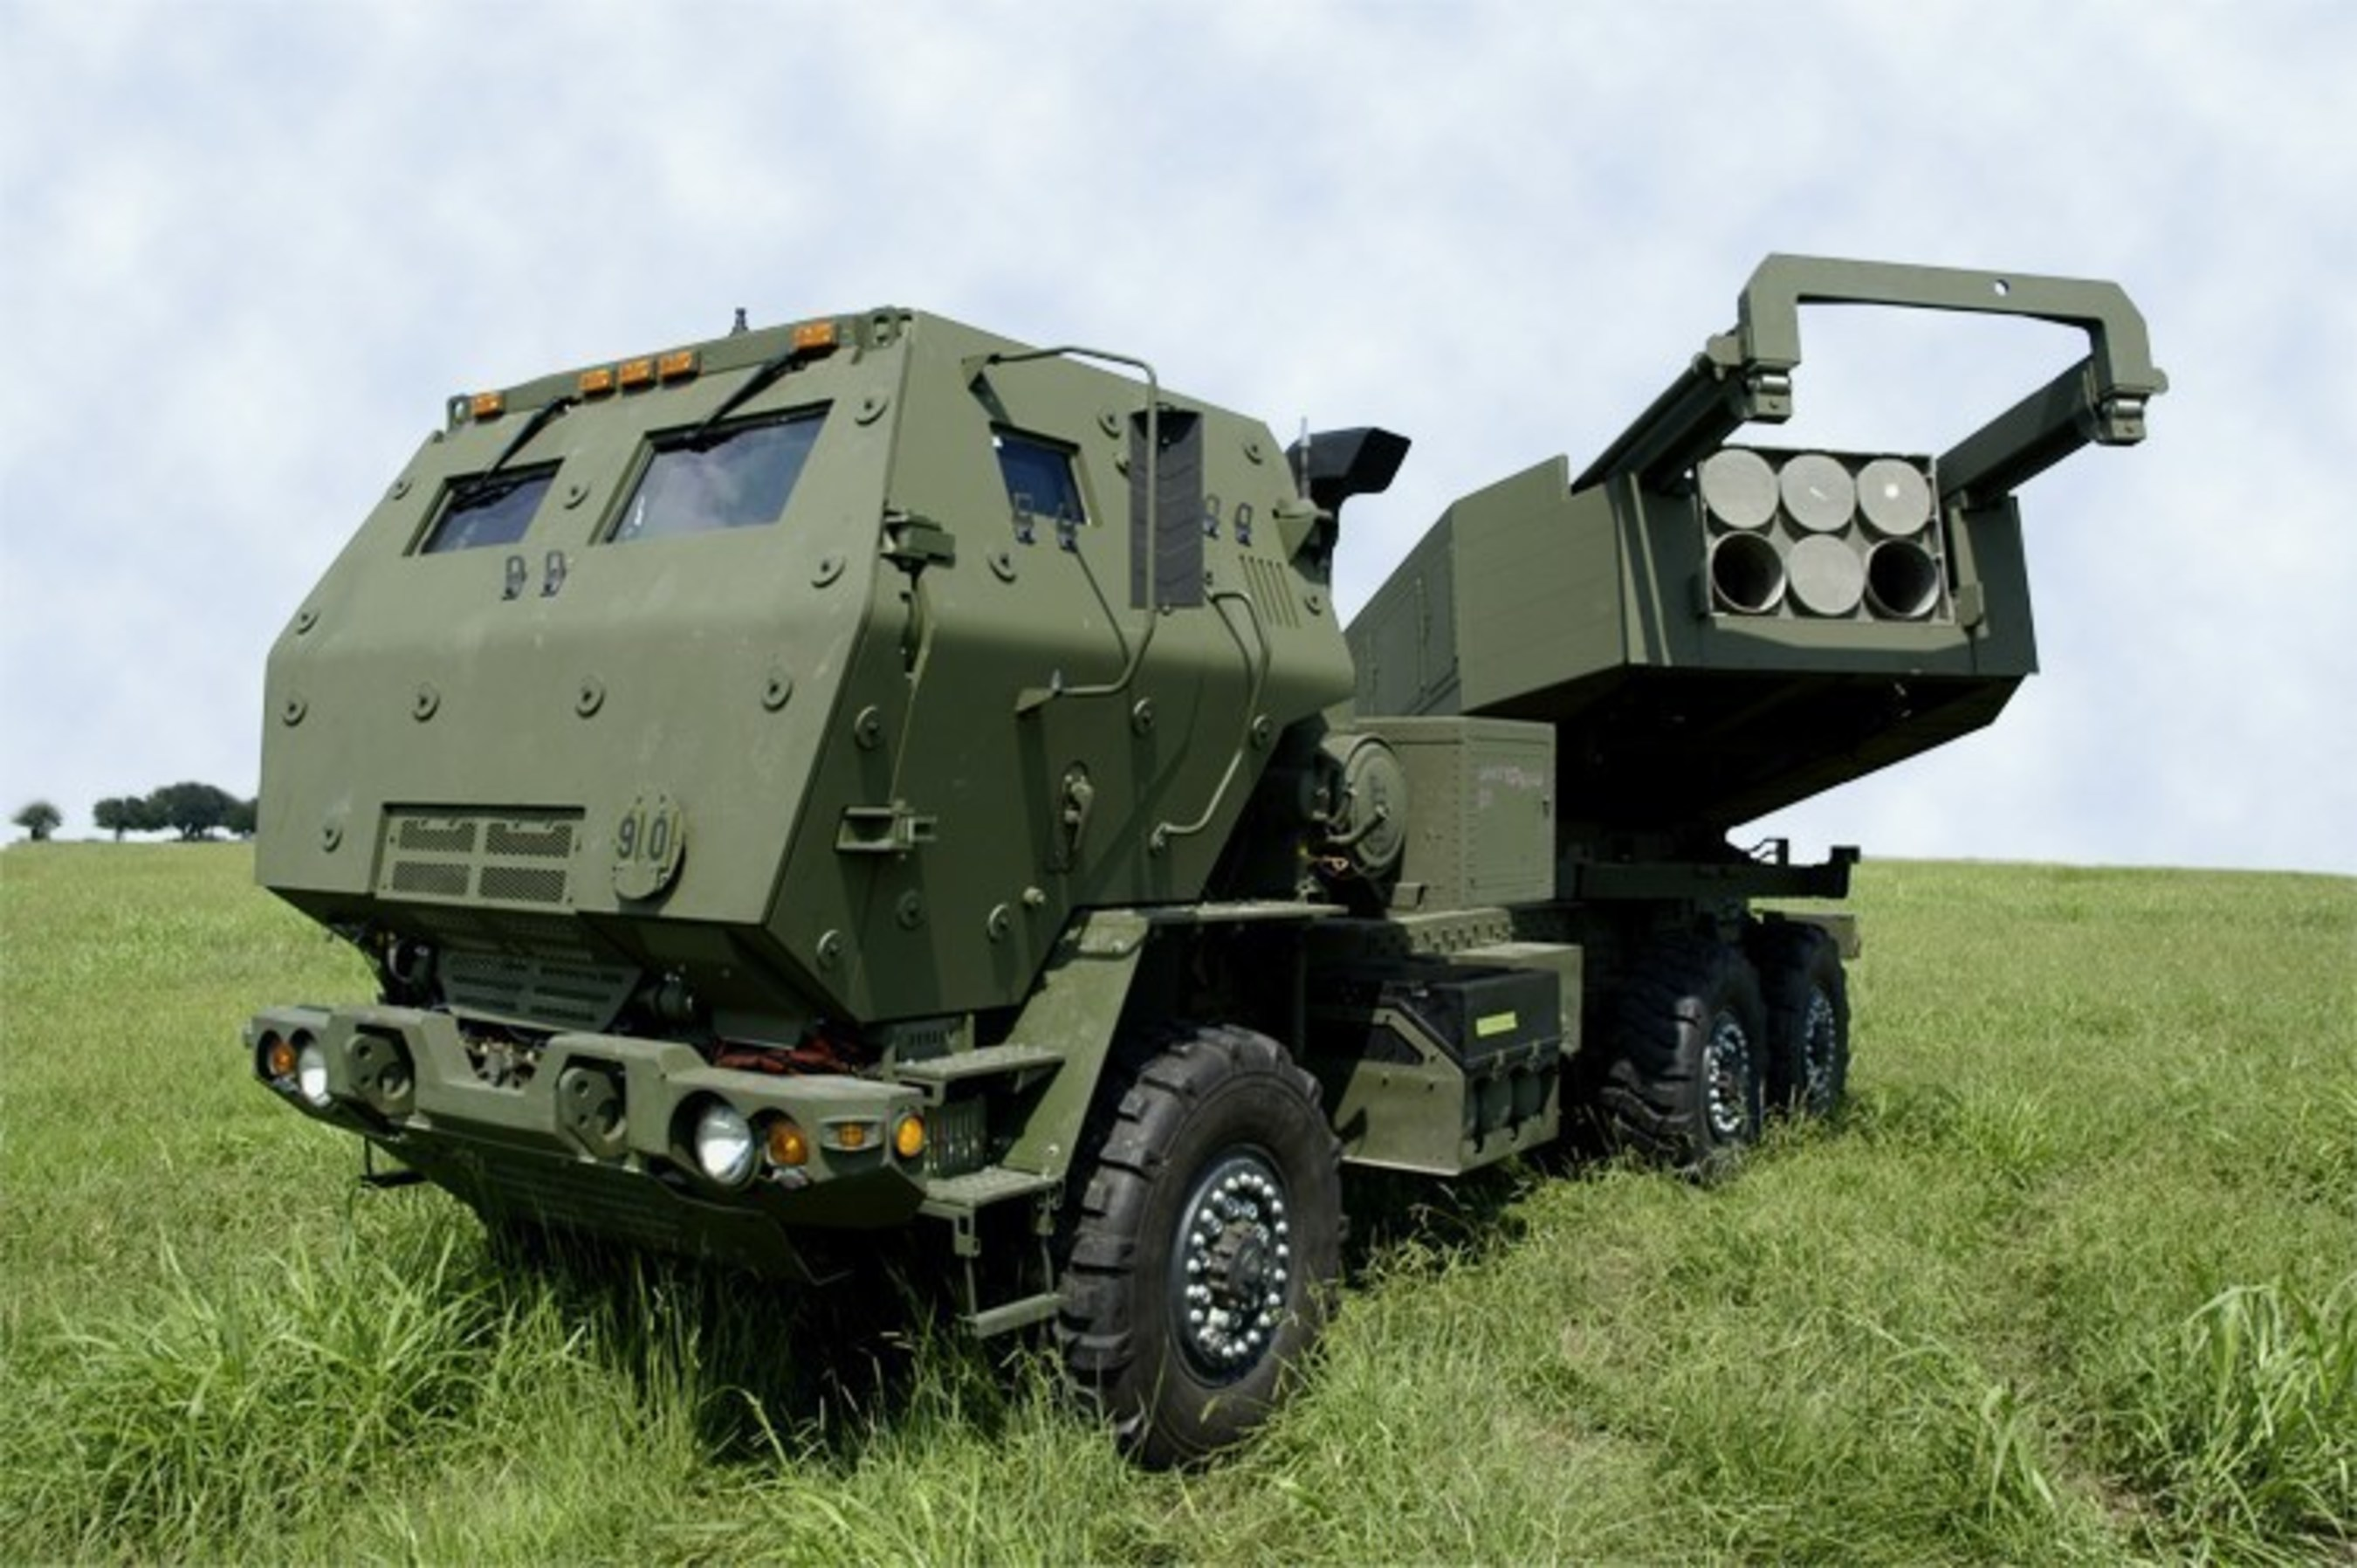 The Lockheed Martin HIMARS launcher fires both GMLRS rockets and ATACMS missiles to strike targets with surgical precision.